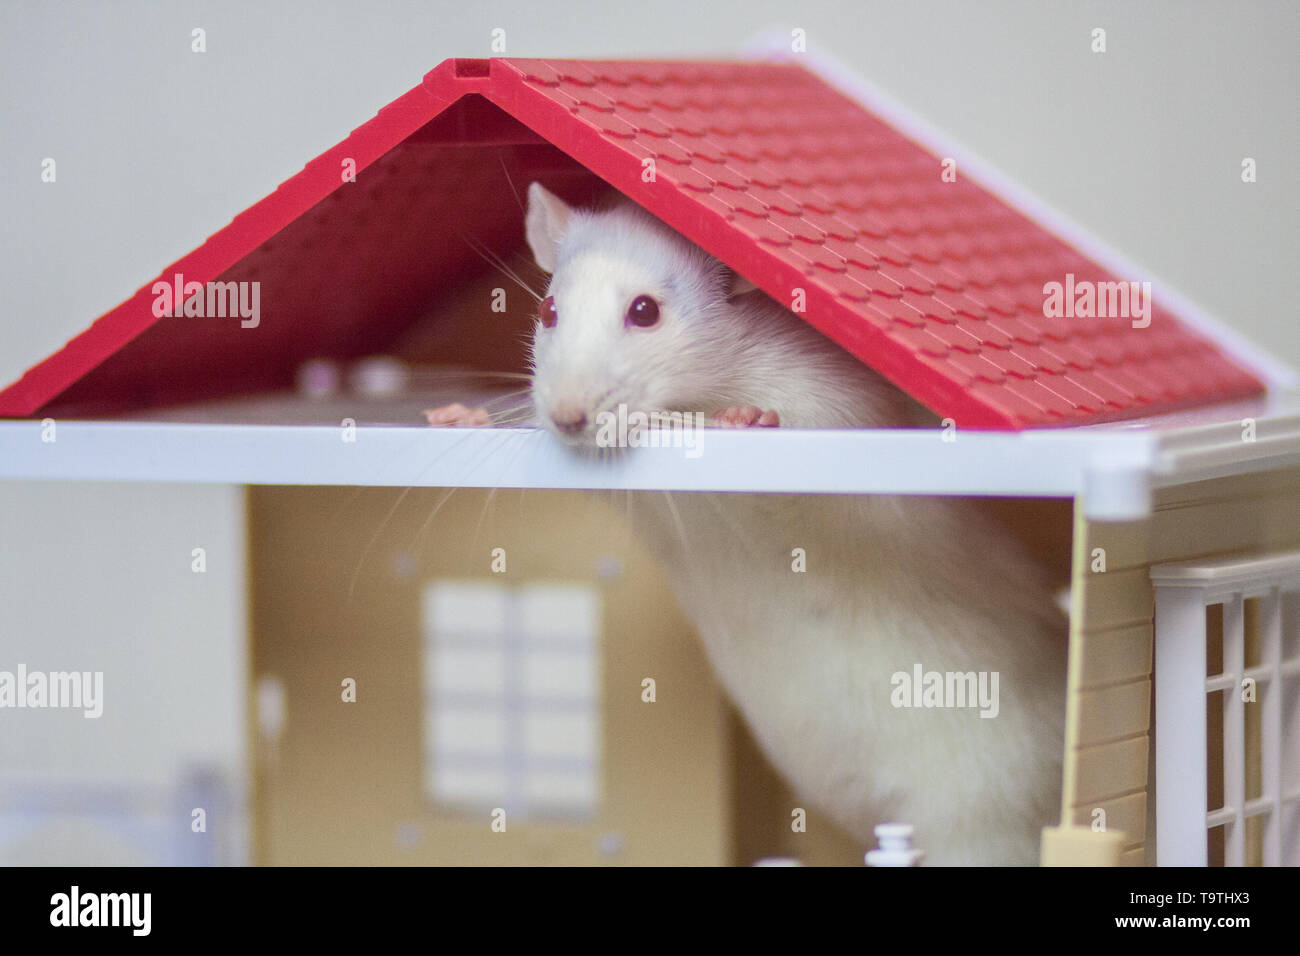 The concept of animal shelter. Accommodation for pets. Apartment for animals. House for rats. House for mice. White rat. White mouse. - Stock Image